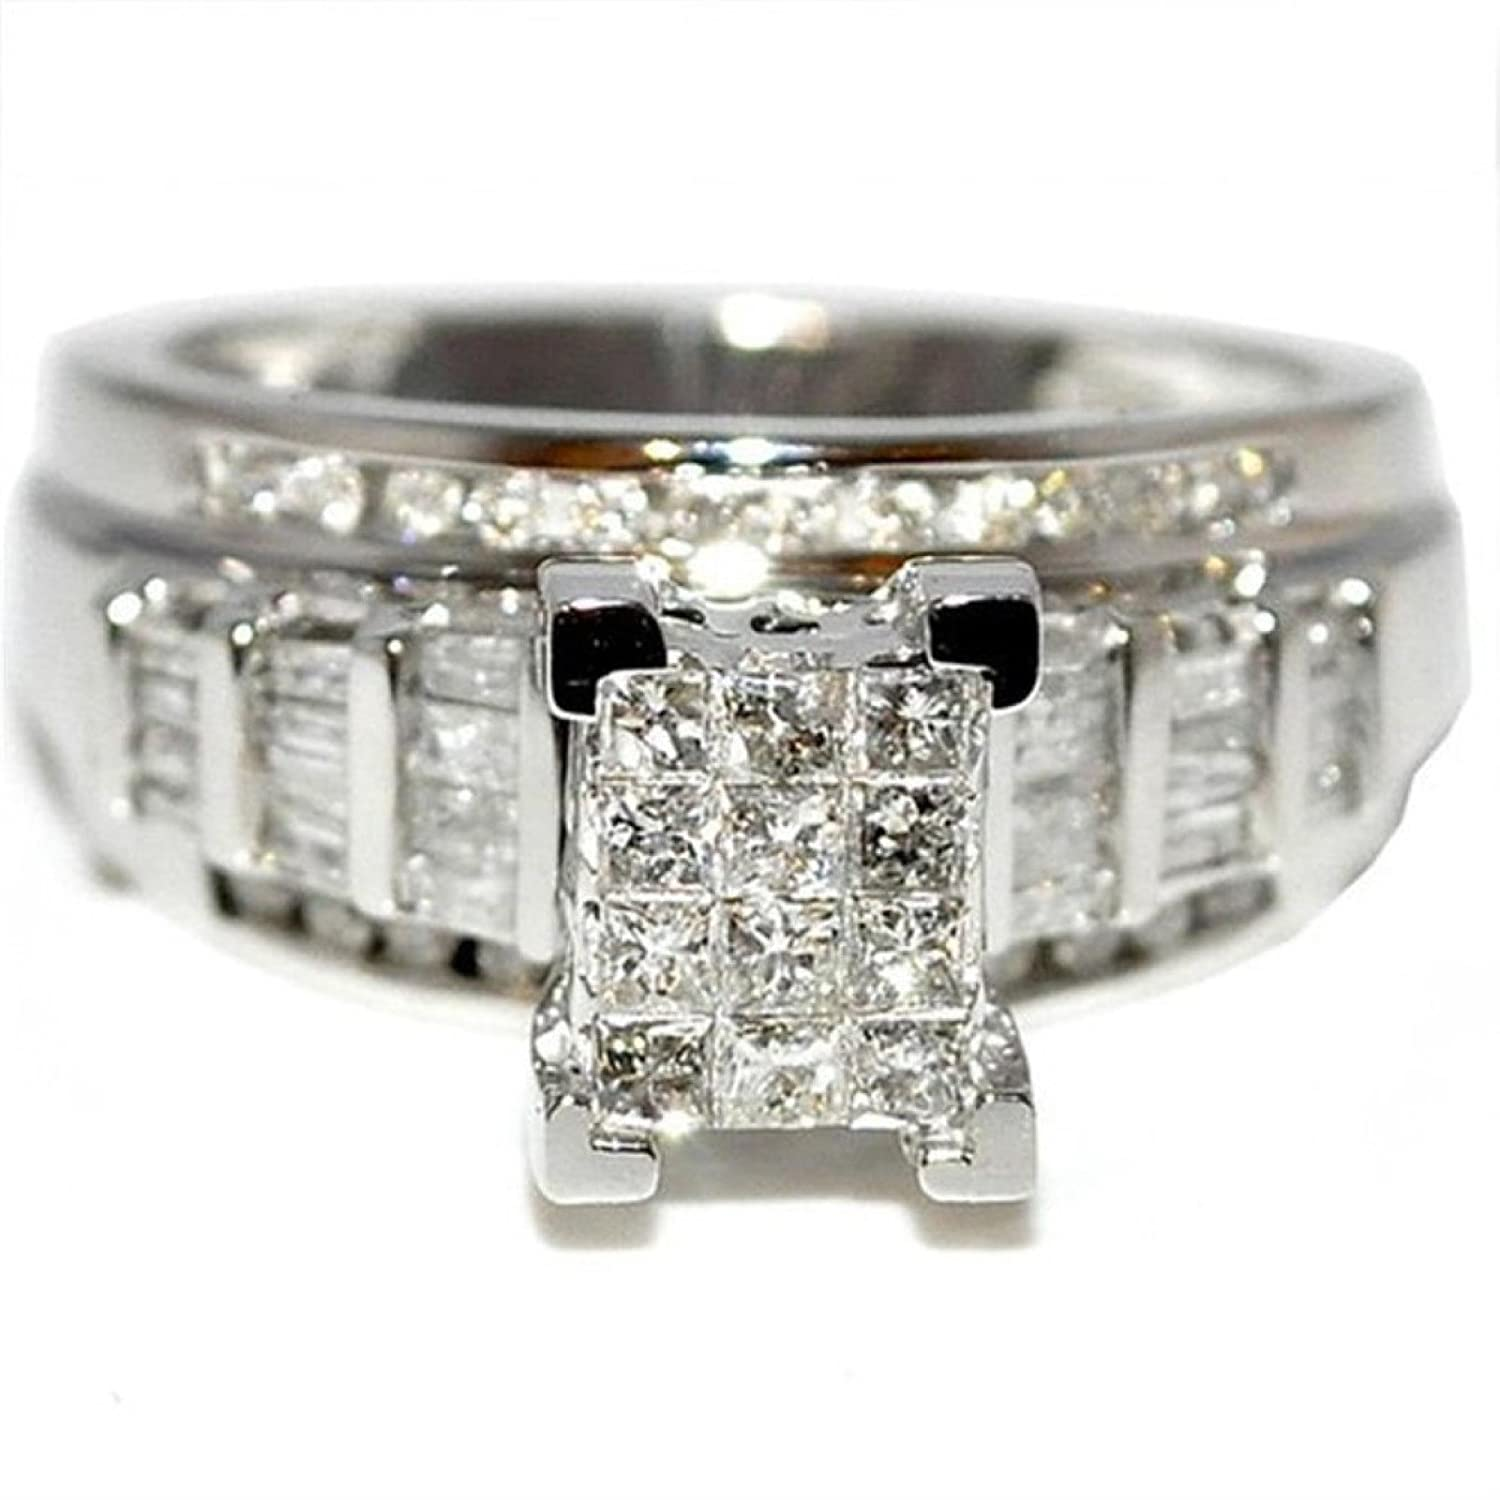 wedding set diamond weddings dimand buy fraser carat hart ring a online platinum claw rings ladies